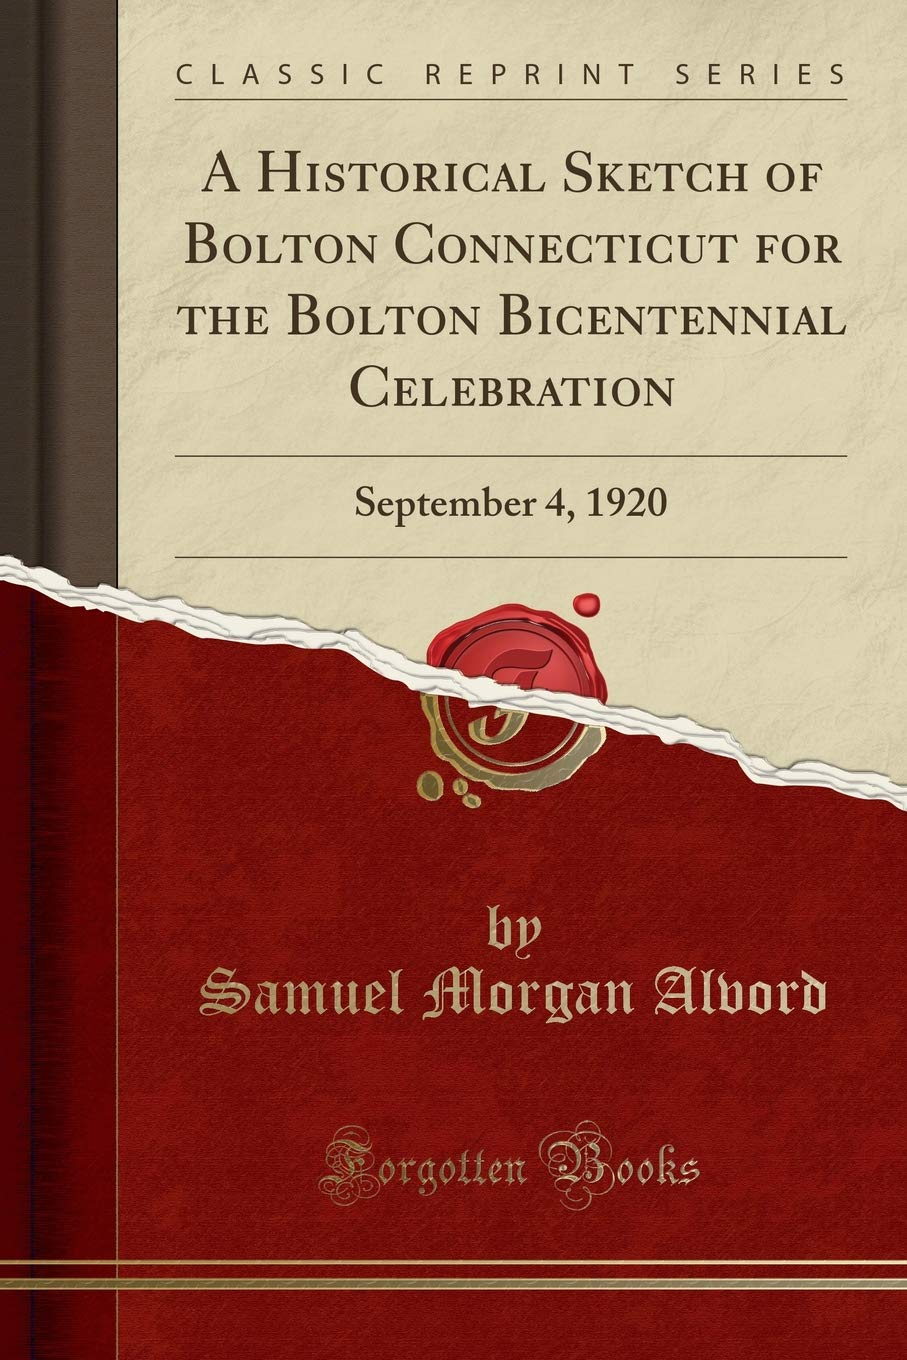 A Historical Sketch of Bolton Connecticut for the Bolton Bicentennial Celebration: September 4, 1920 (Classic Reprint)